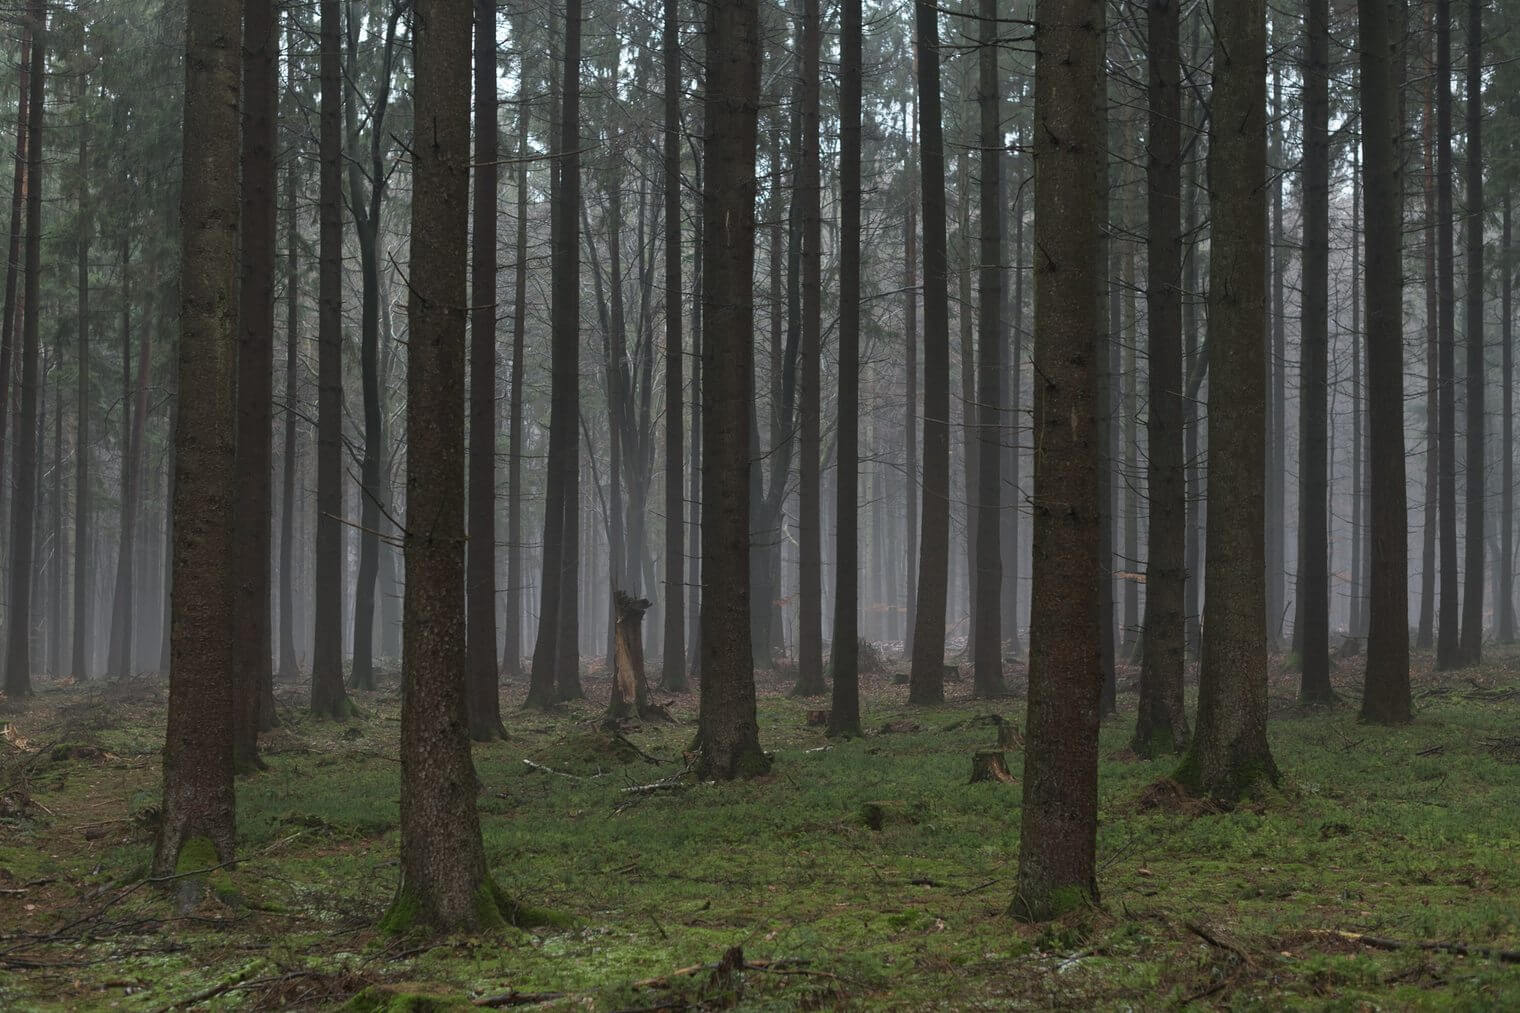 Unedited Forest Image